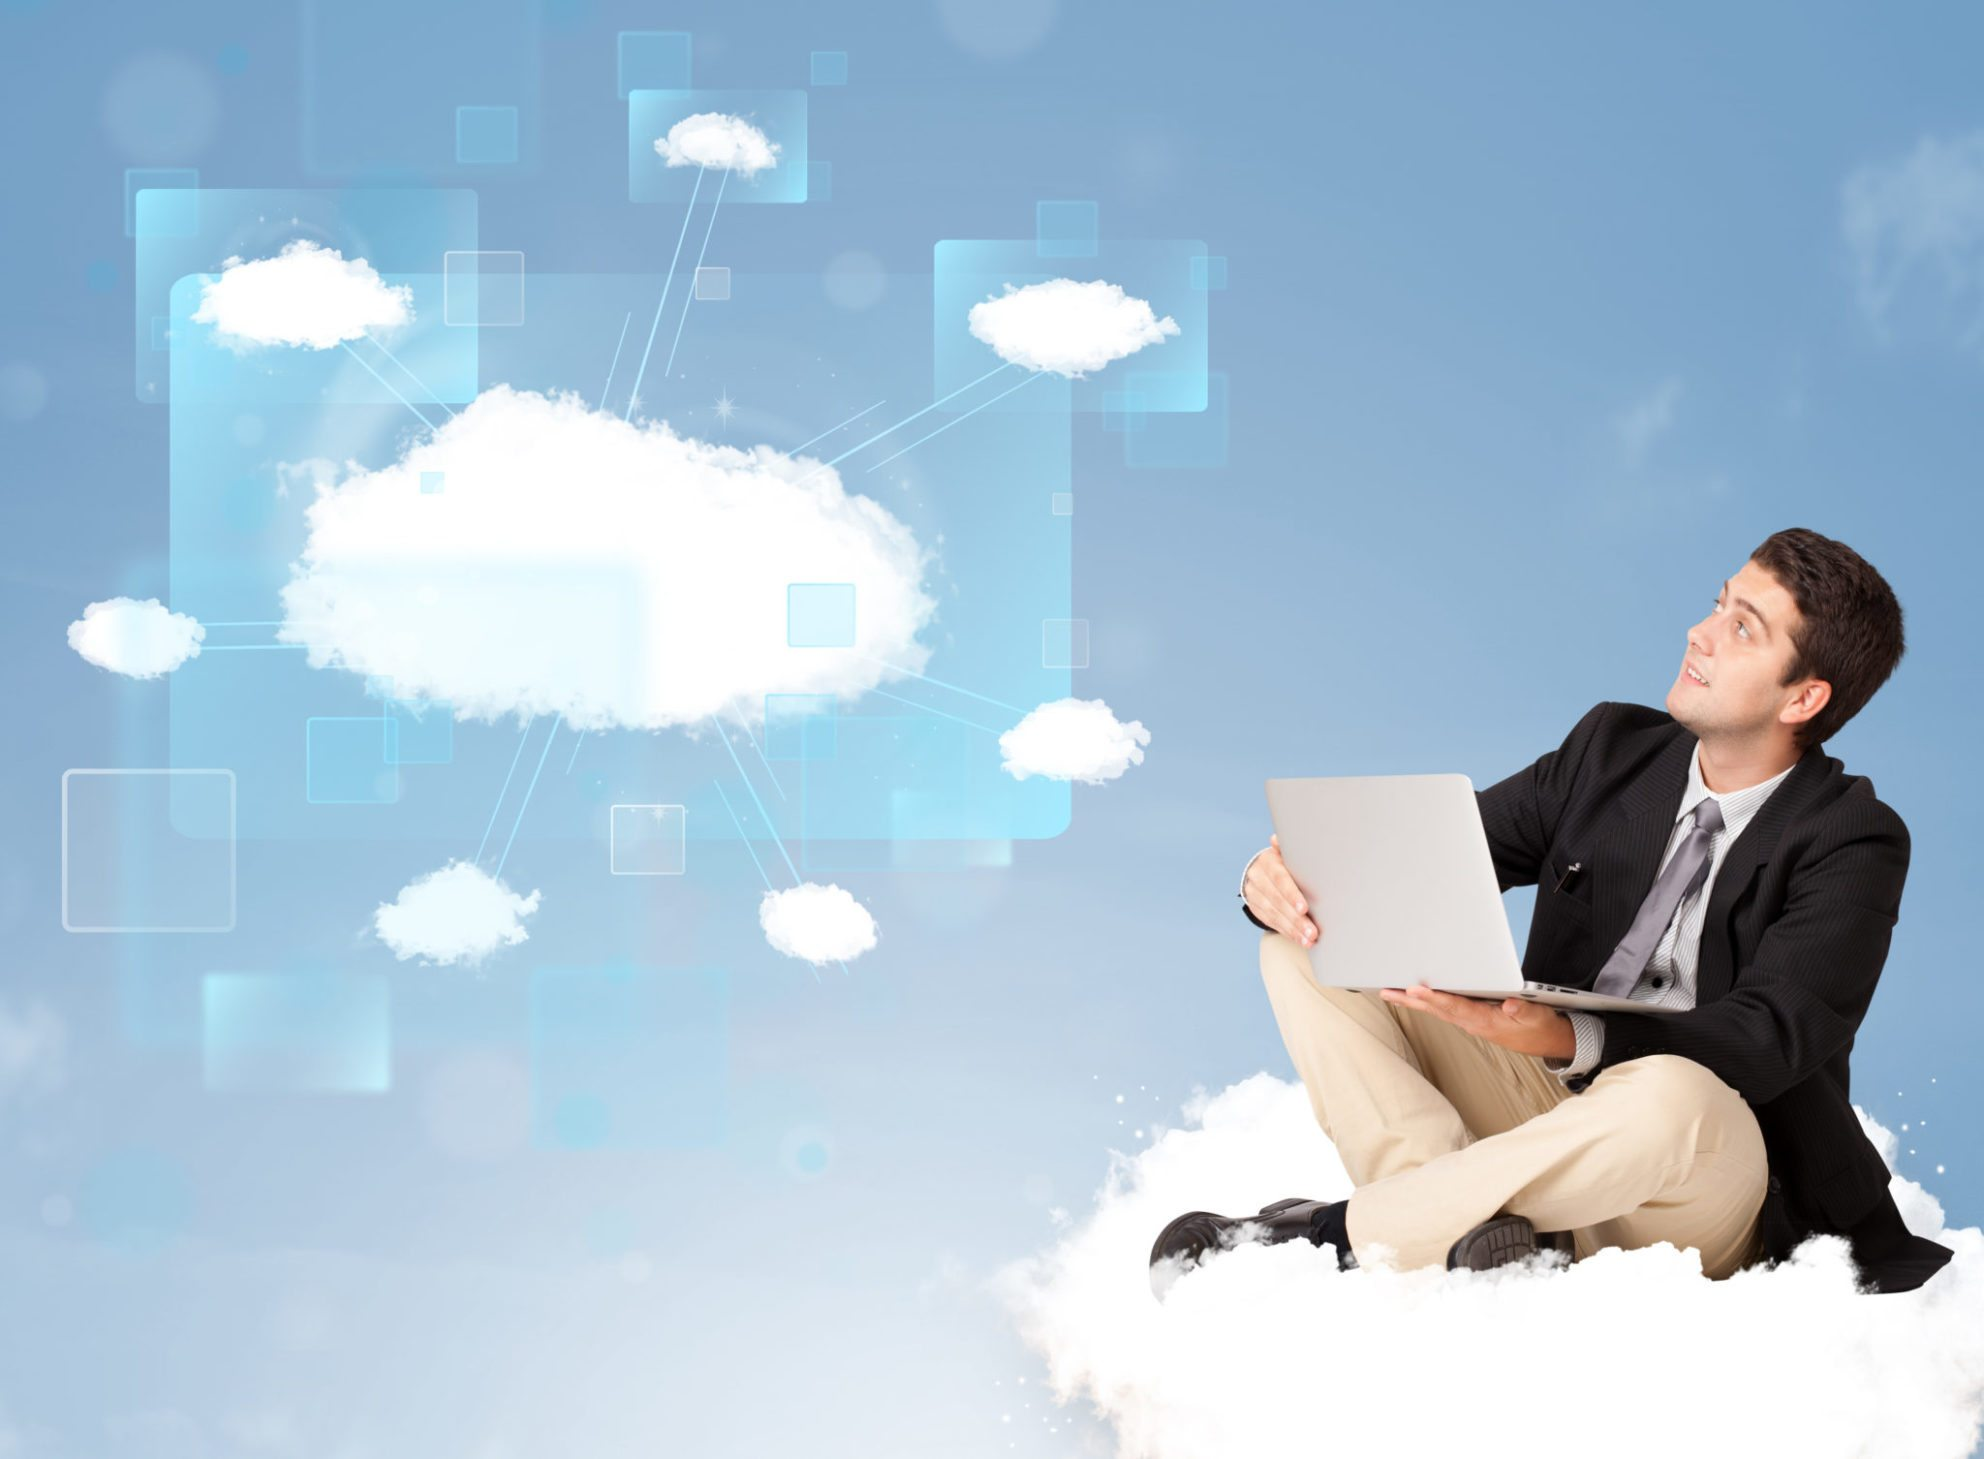 Cloud storage and device integration will liberate you from your desk in 2014